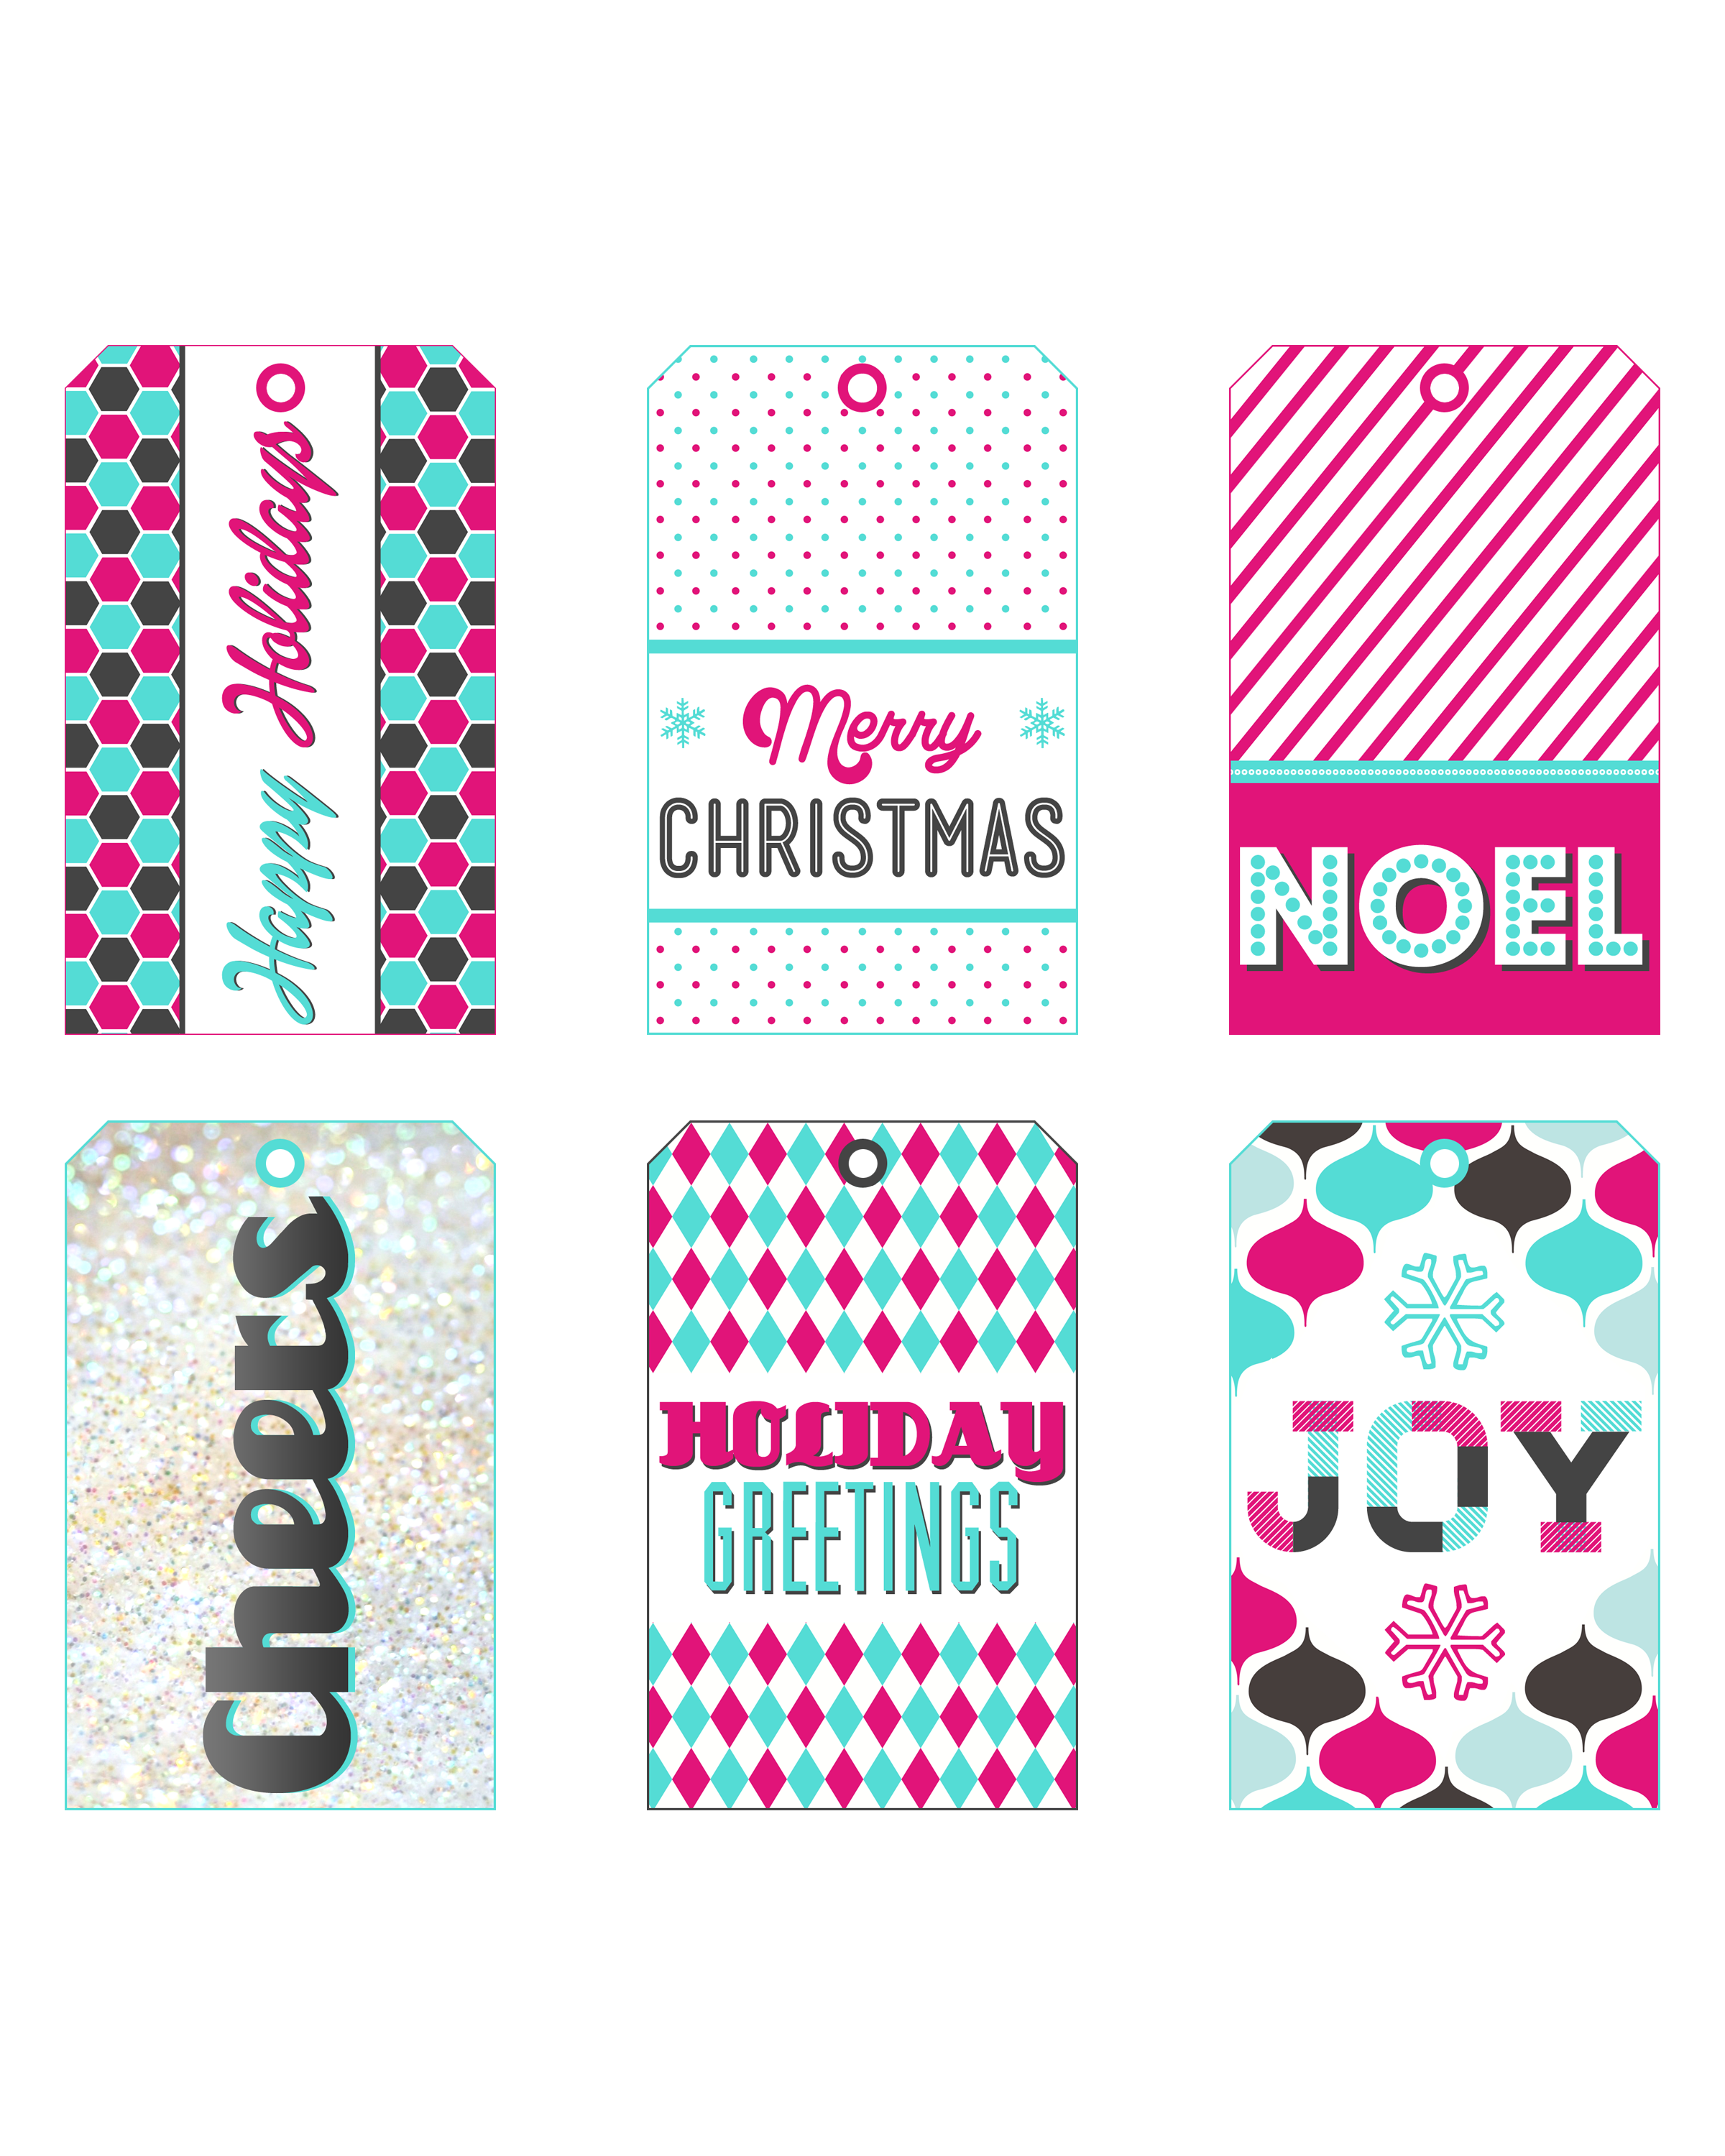 Free printable holiday gift tags with sparkle pizzaz the the christmas joy collection negle Gallery